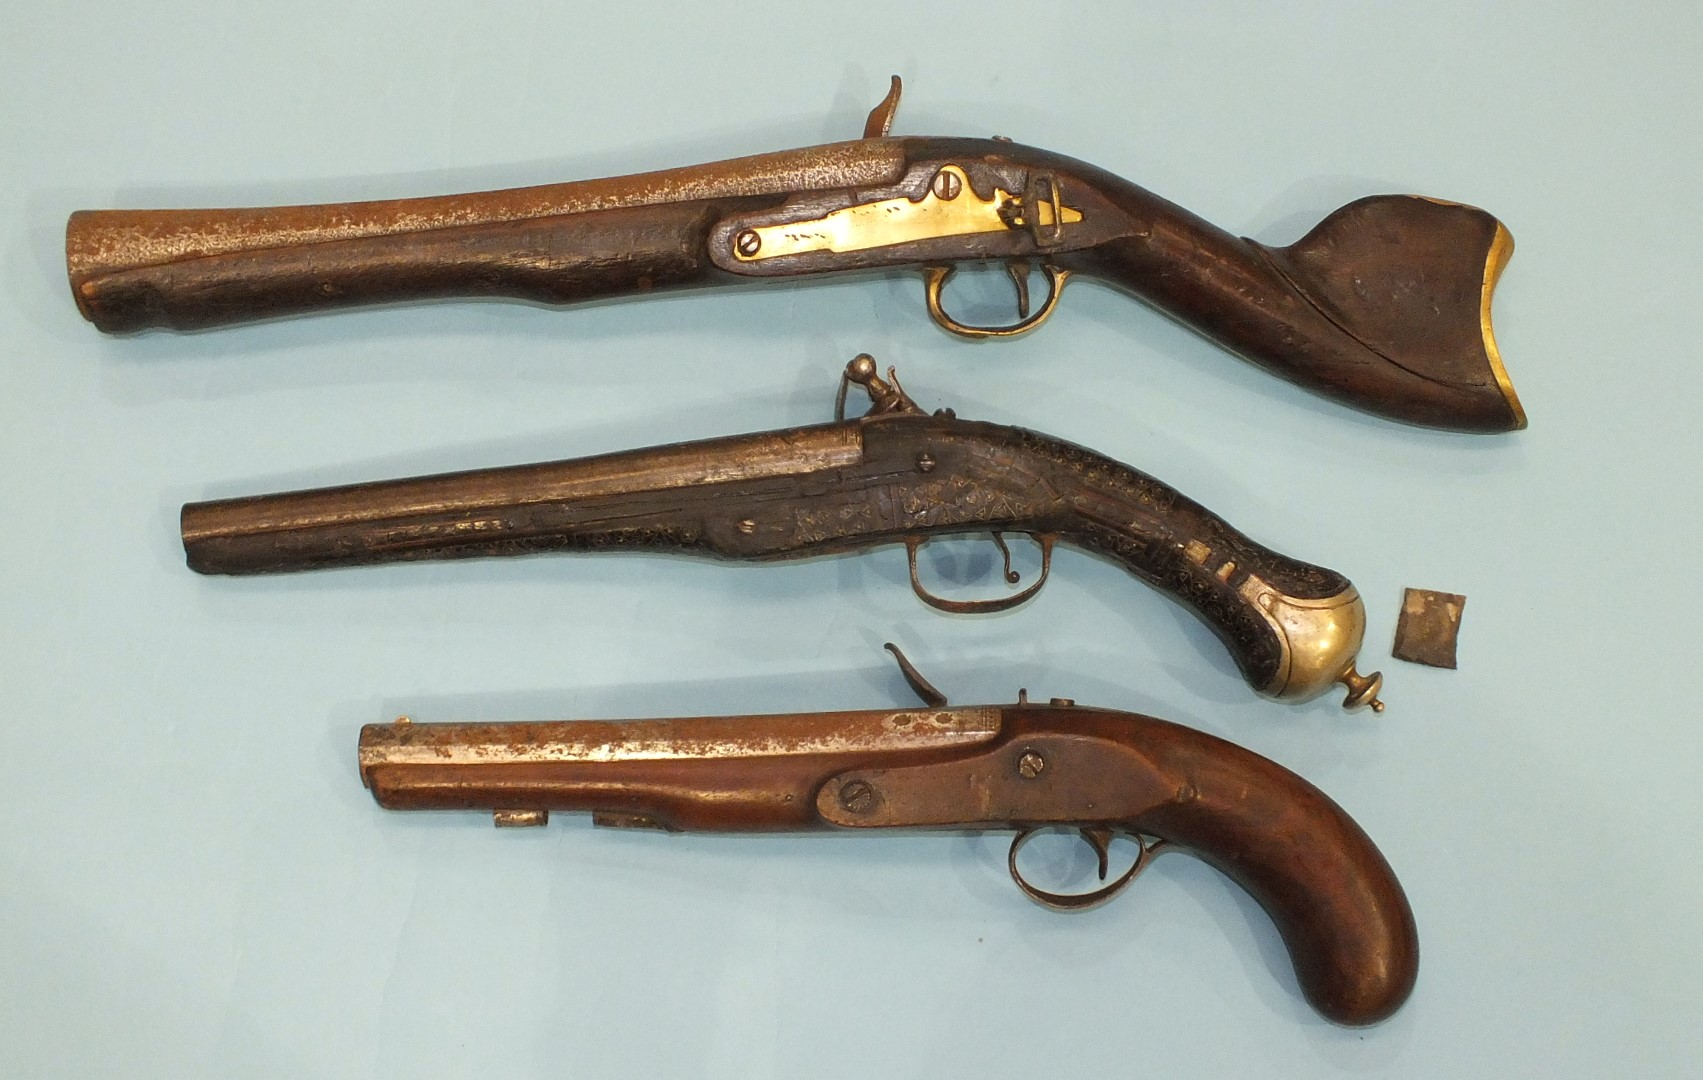 Lot 227 - A Turkish flintlock blunderbuss pistol with 29cm flared barrel and brass fittings, lock lacking